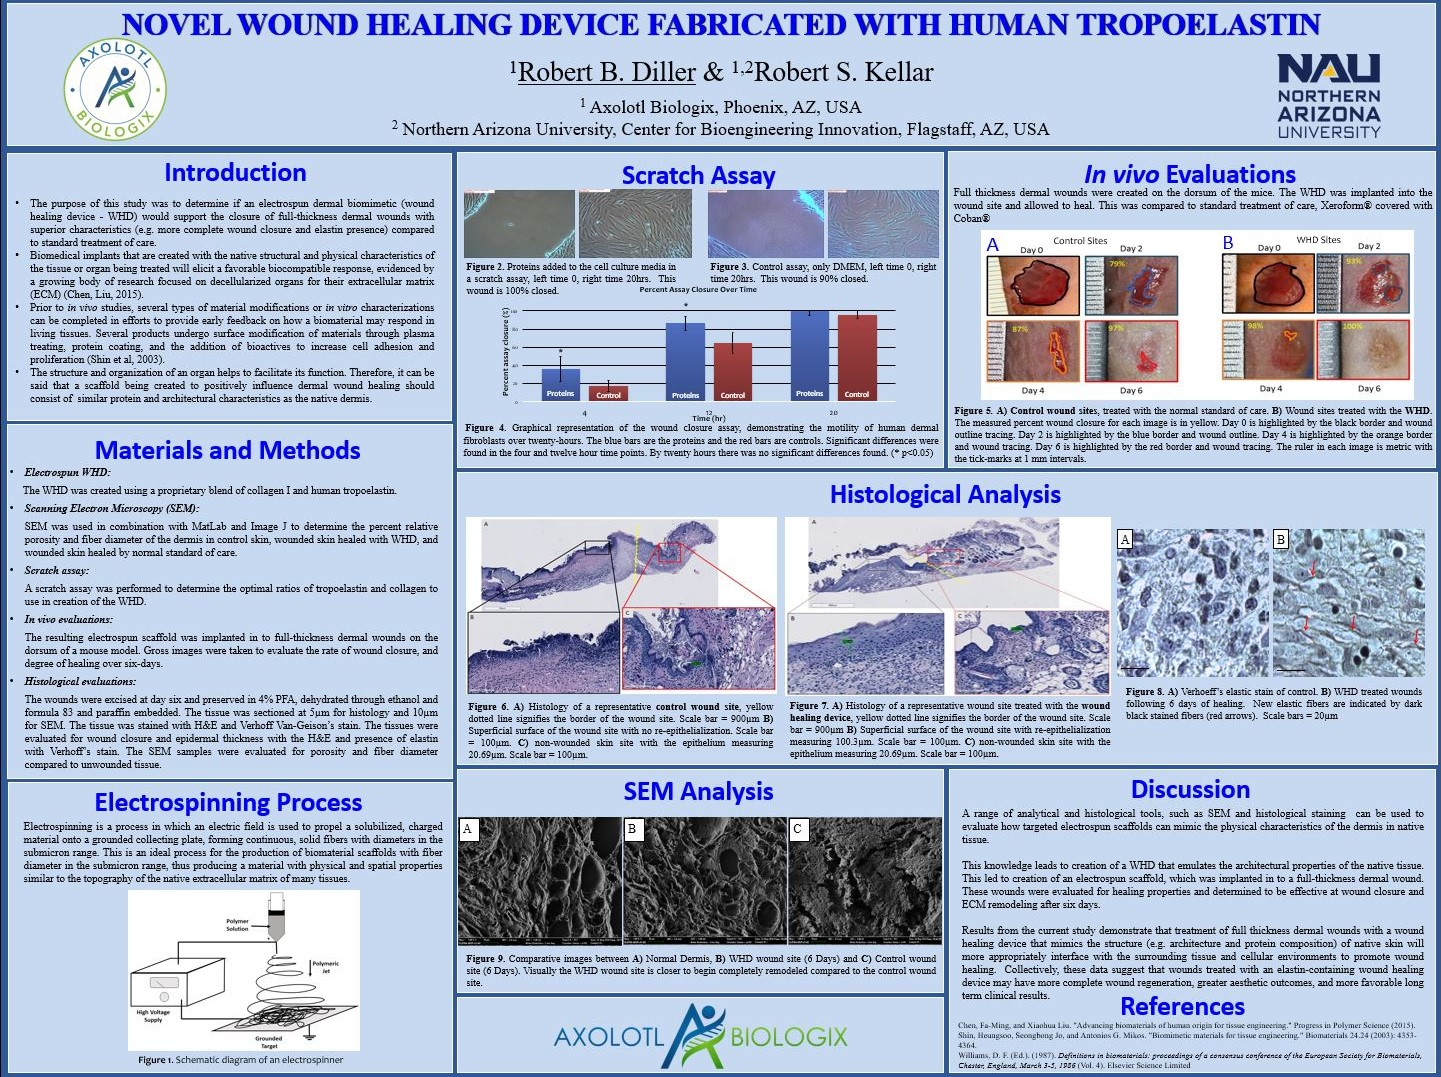 Novel Wound Healing Device Fabricated with Human Tropoelastin poster (2).JPG